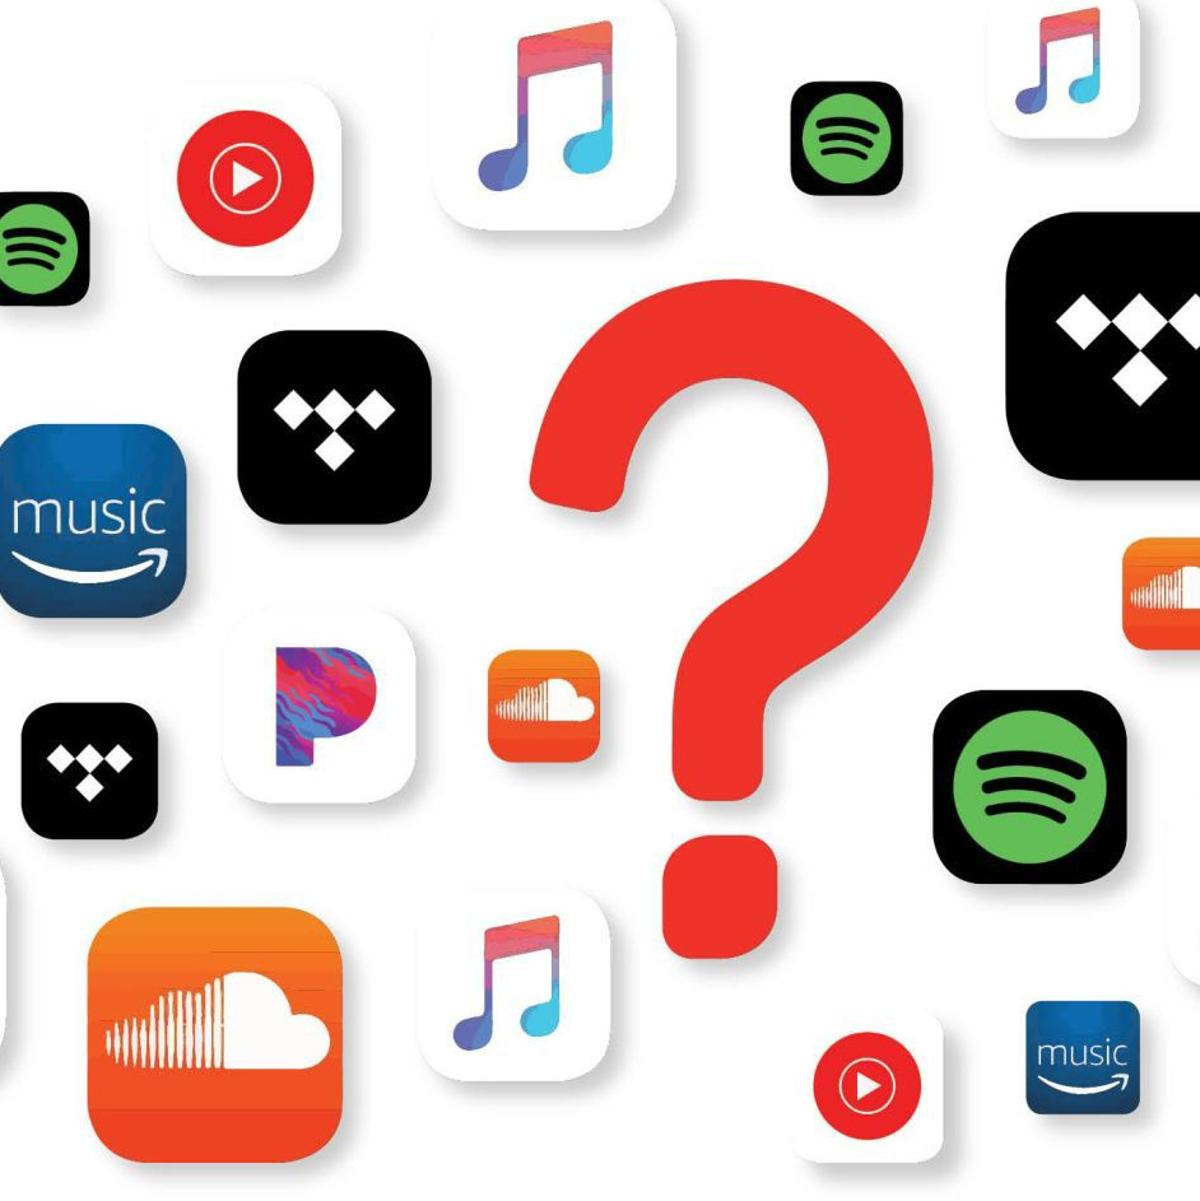 Spotify? Apple Music? Tidal? Pandora? How to choose your